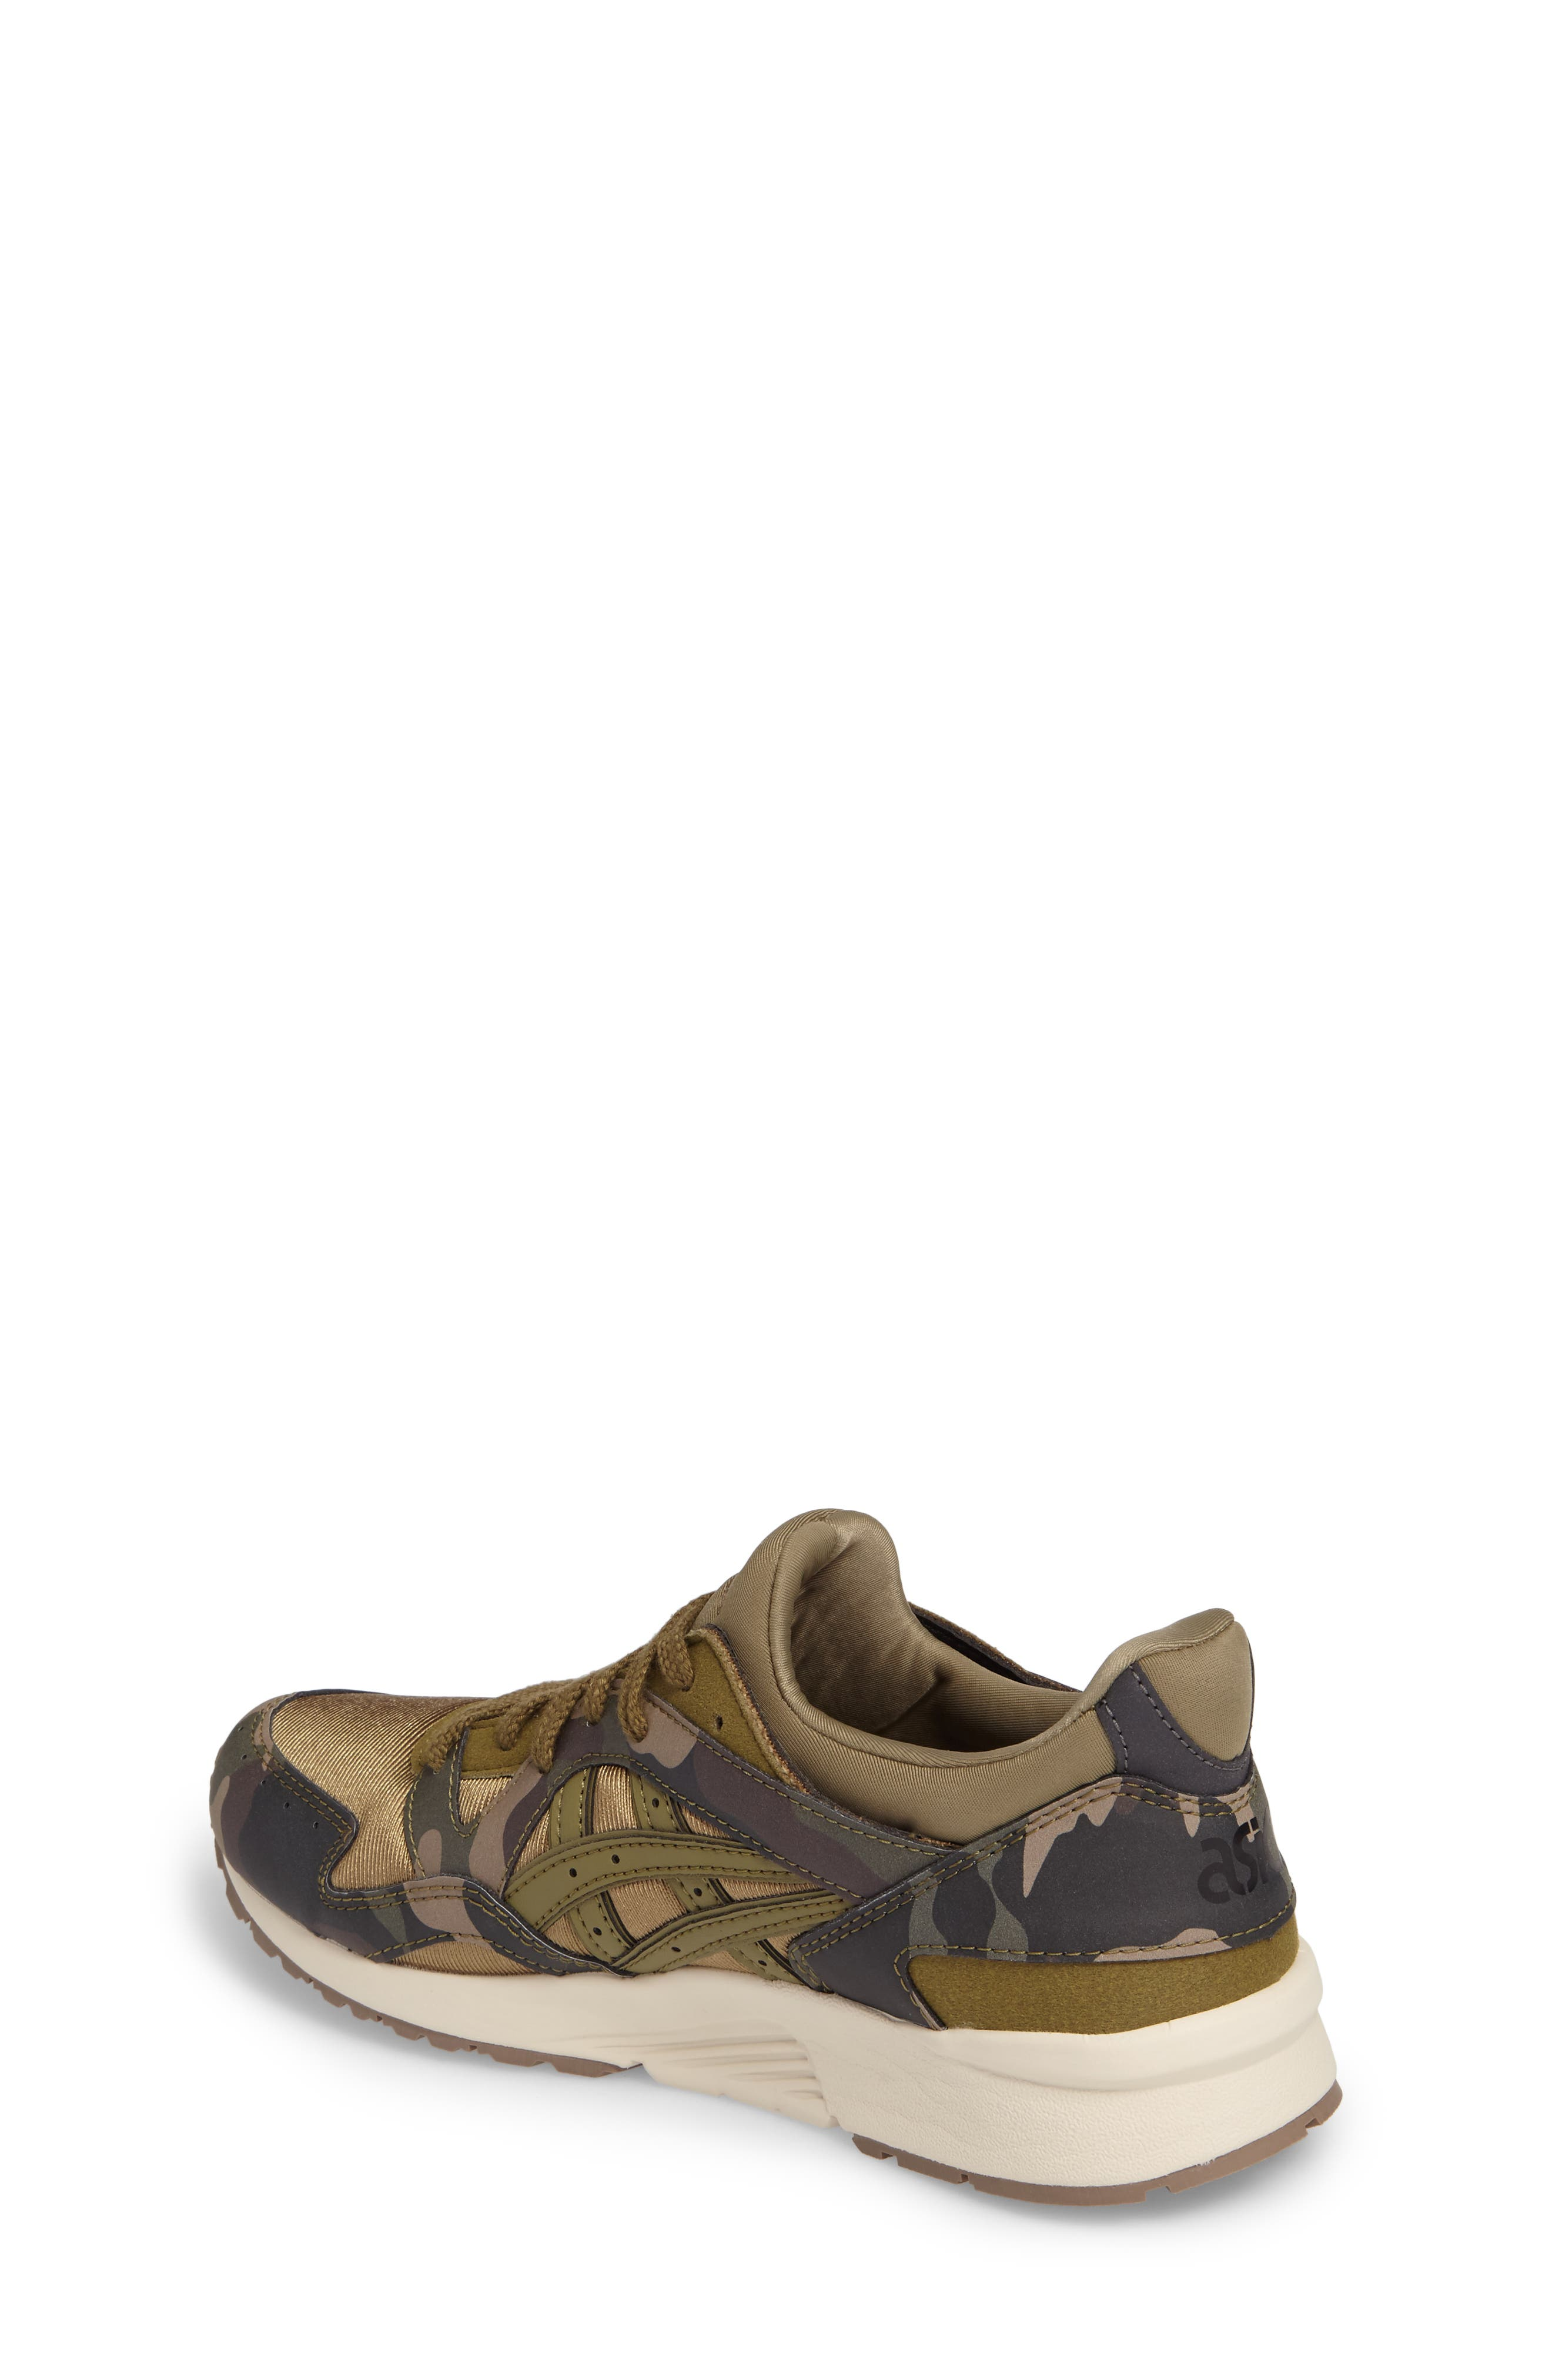 GEL-LYTE<sup>®</sup> V GS Sneaker,                             Alternate thumbnail 2, color,                             Martini Olive/ Martini Olive